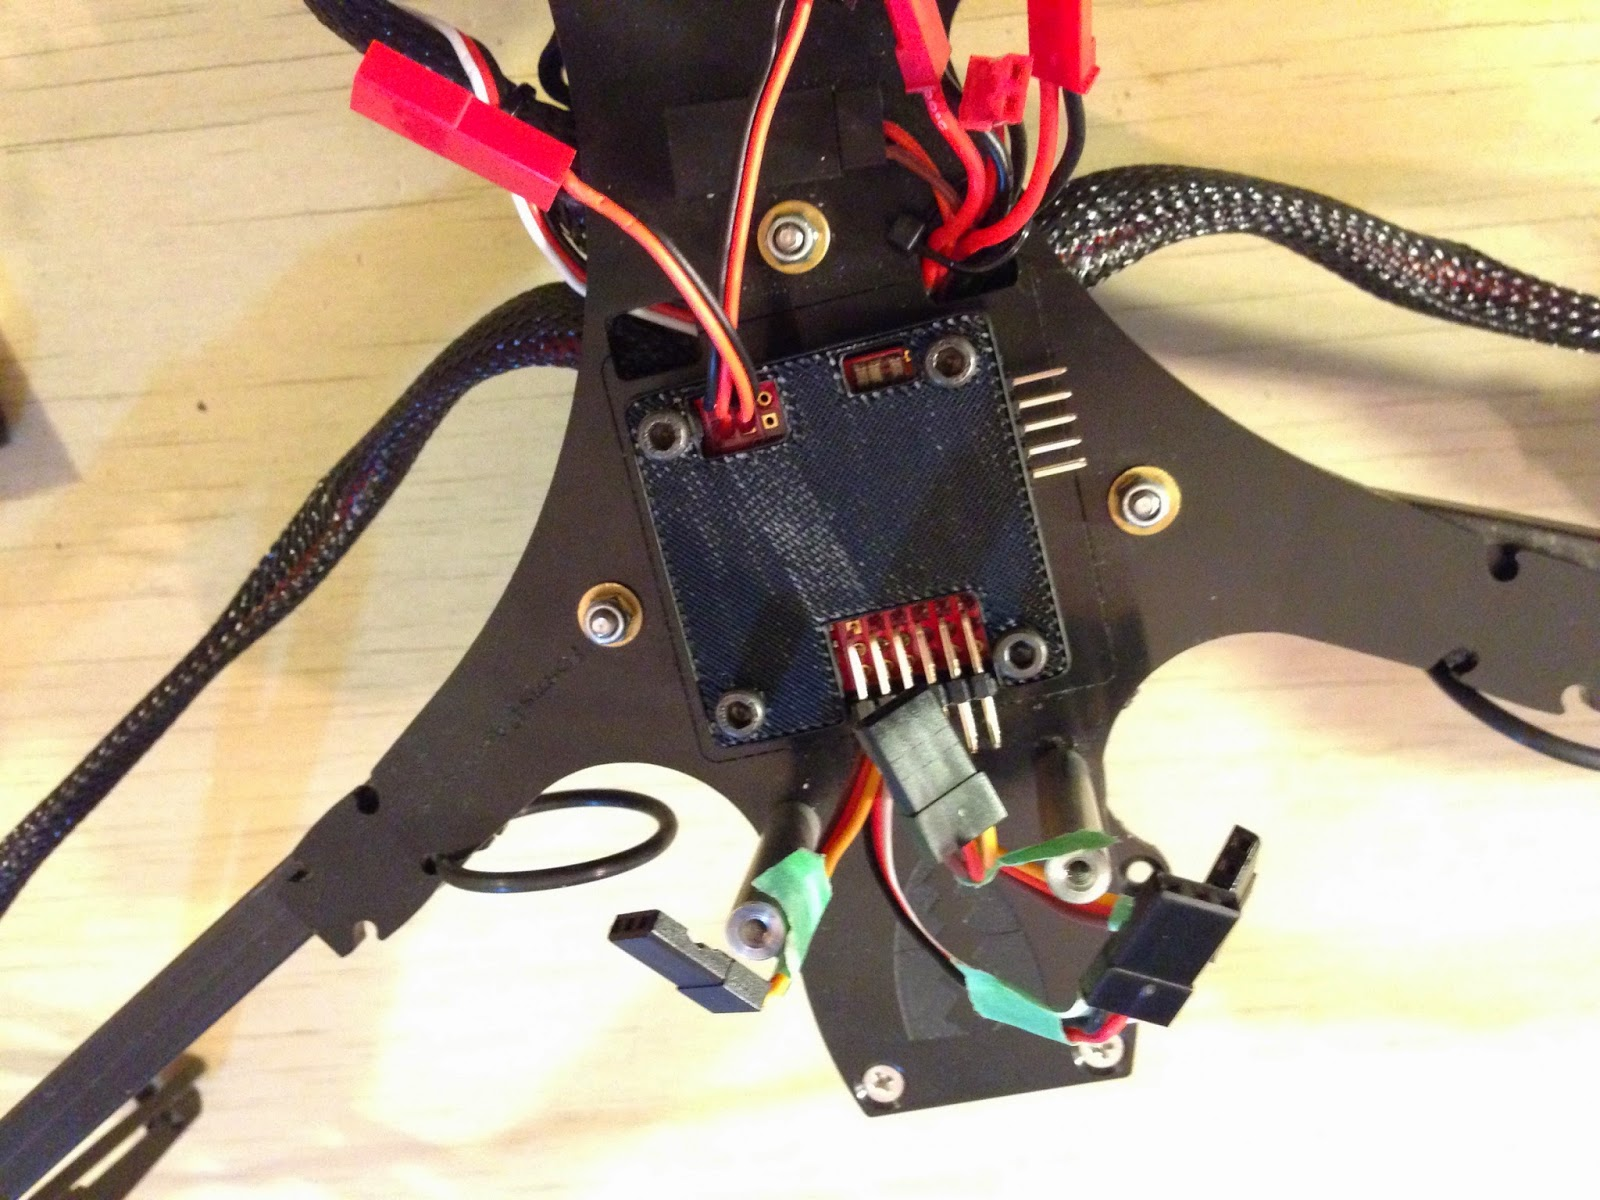 Bluefish August 2014 Tricopter Wiring Kk Board 3d Printed Battery Holder Land Gear For Fortis